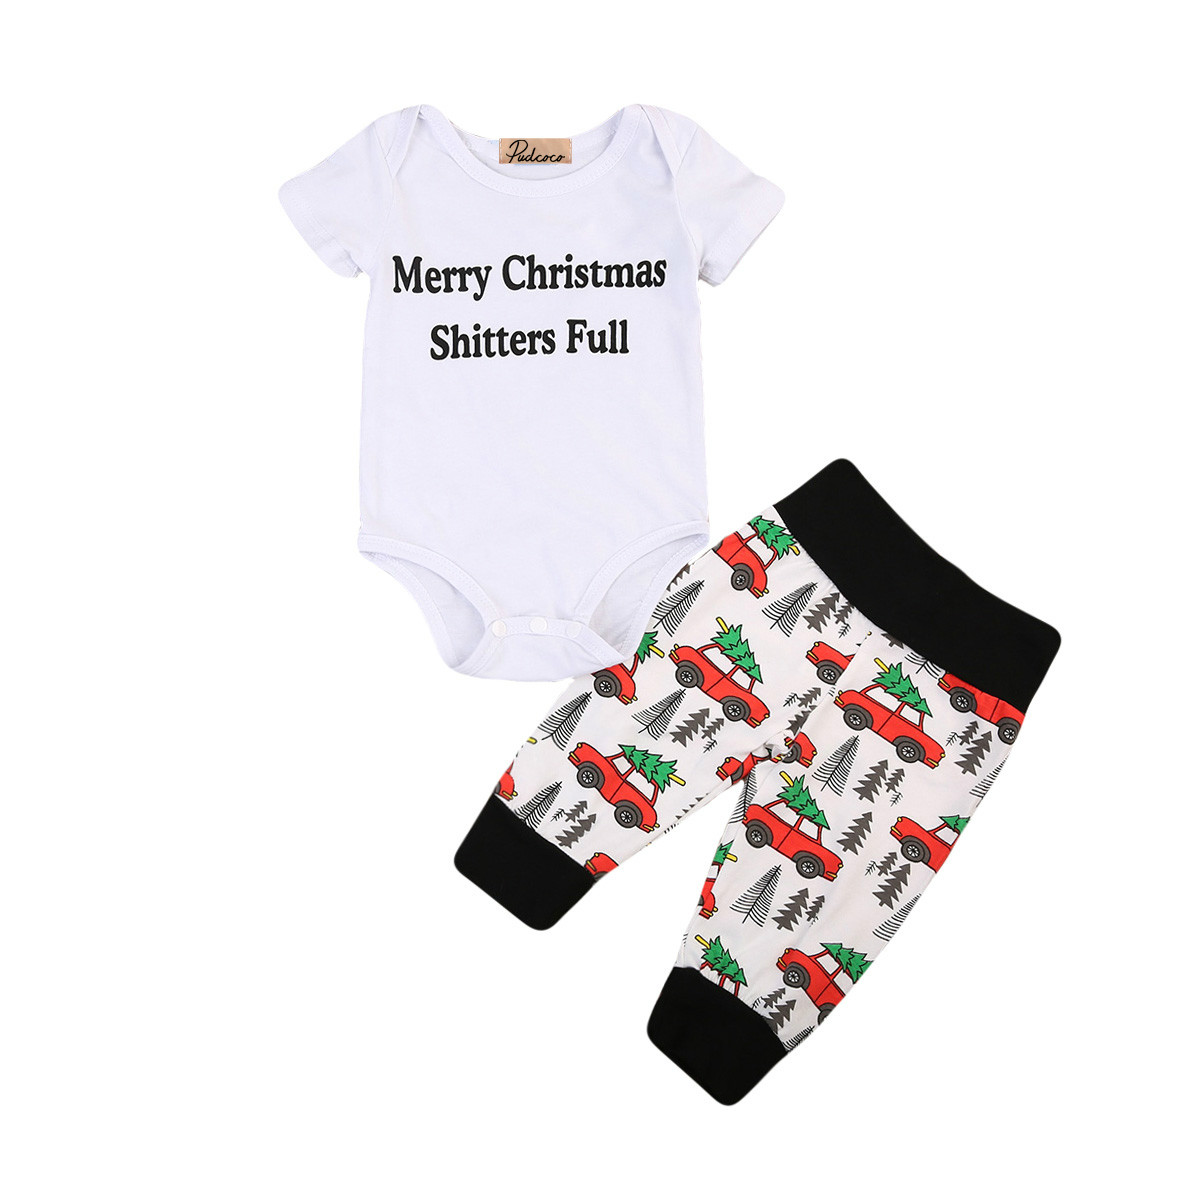 2PCS Baby Christmas Outfits Clothes Newborn Baby Boys Girls Cotton Rompers Car Print Pants Xmas Outfits Children Clothing Set